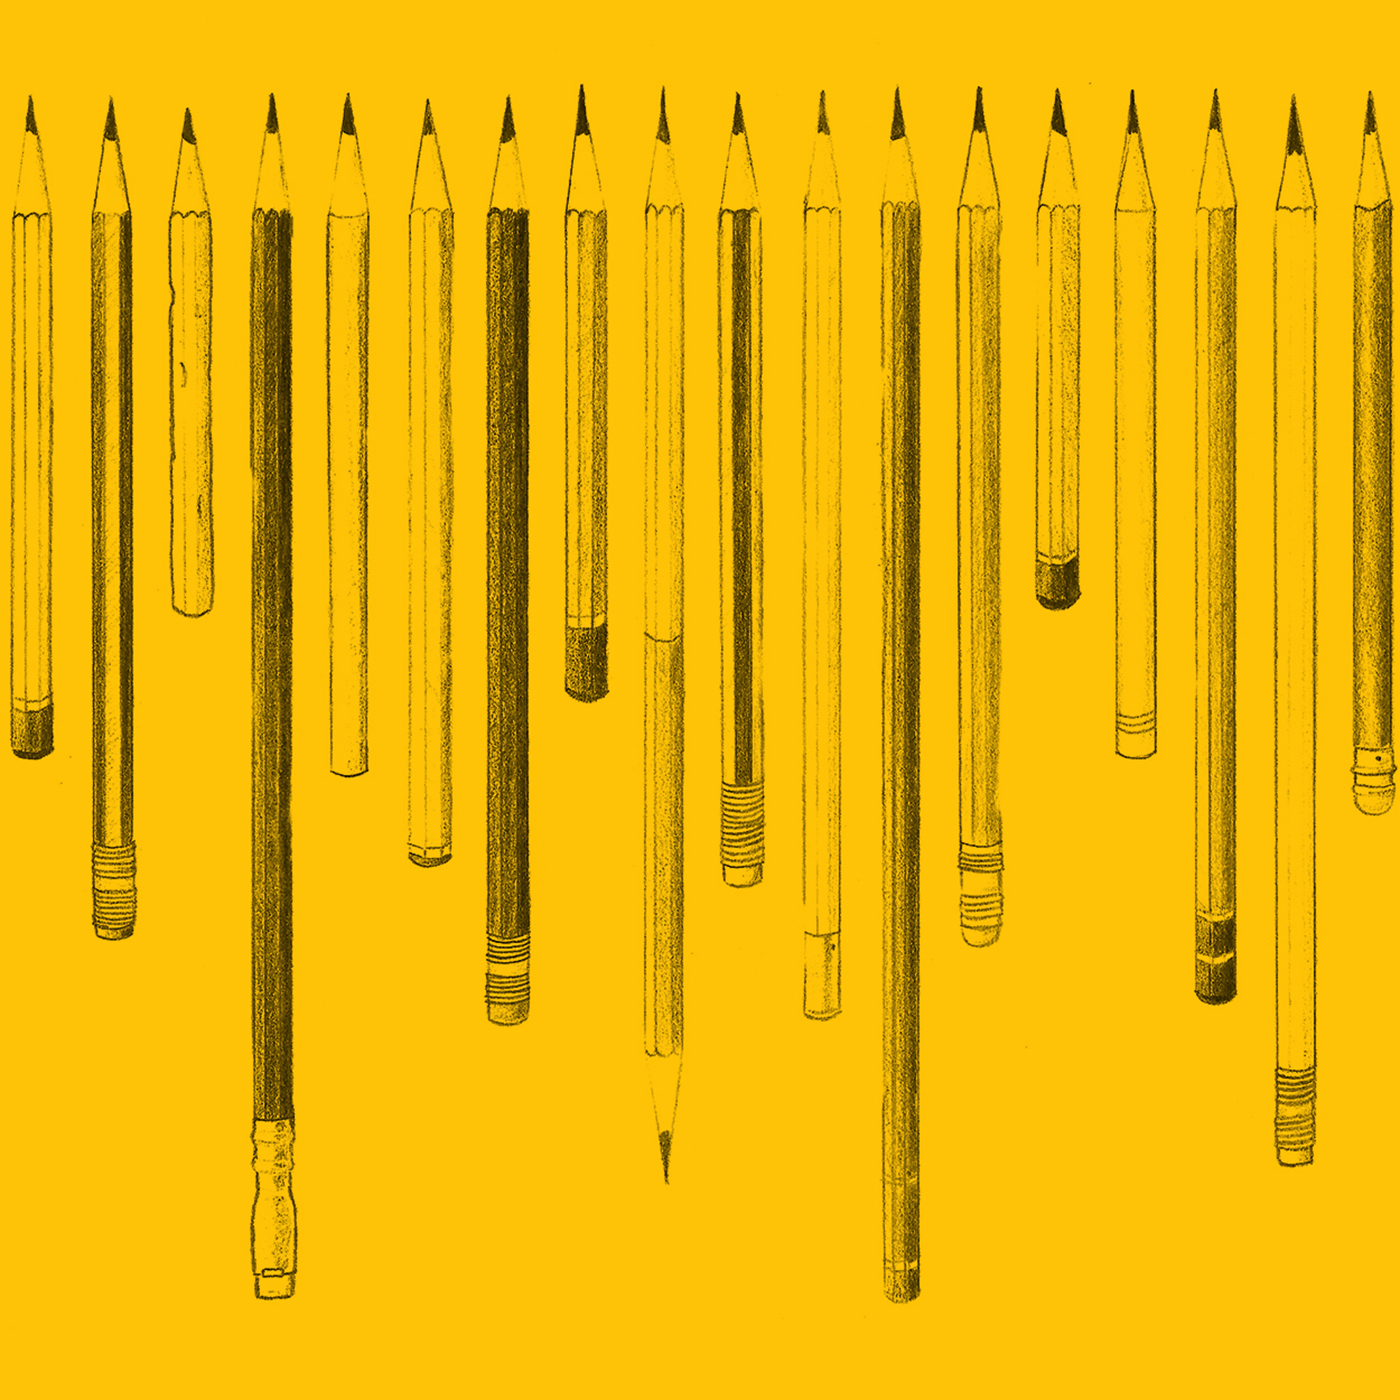 Yellow illustration of pencils of various lengths lined up next to each other.